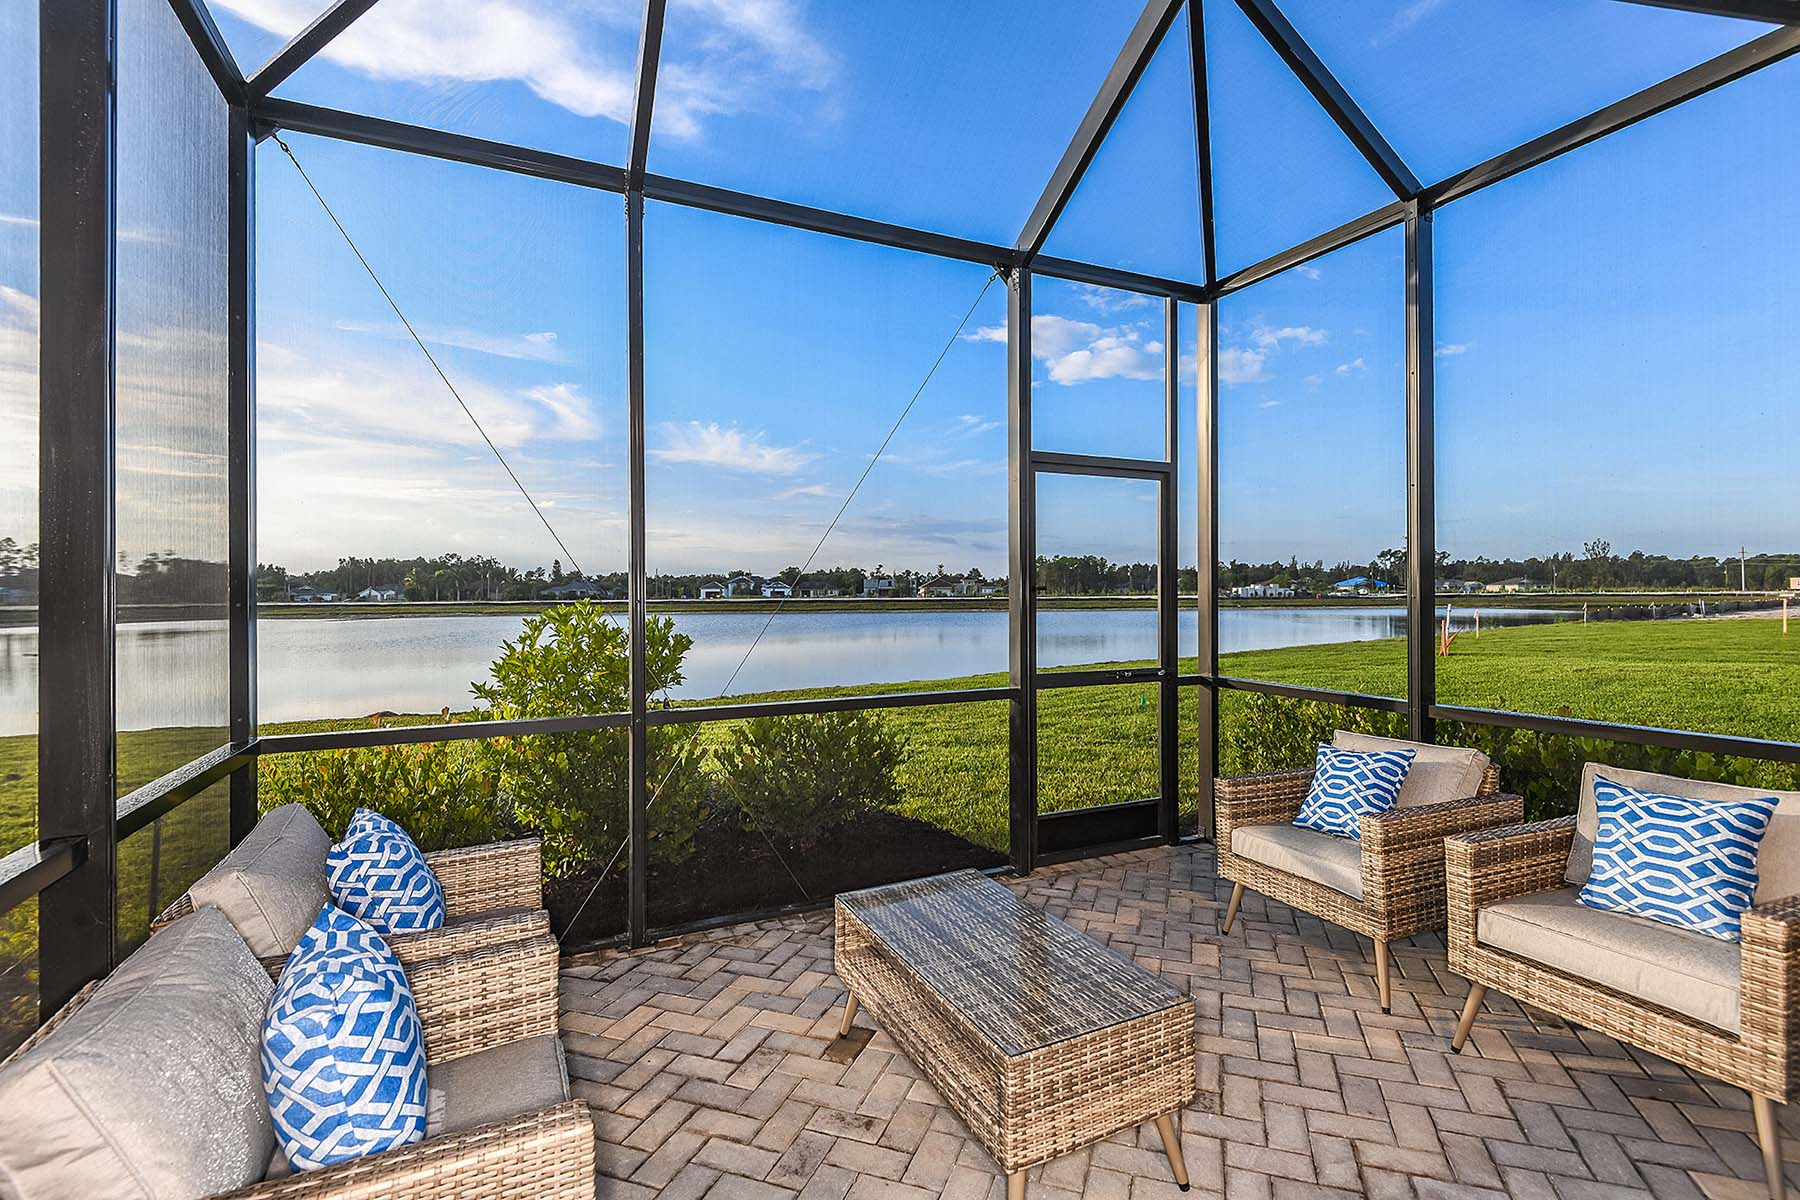 Oceana Plan Patio at Bonavie Cove in Fort Myers Florida by Mattamy Homes